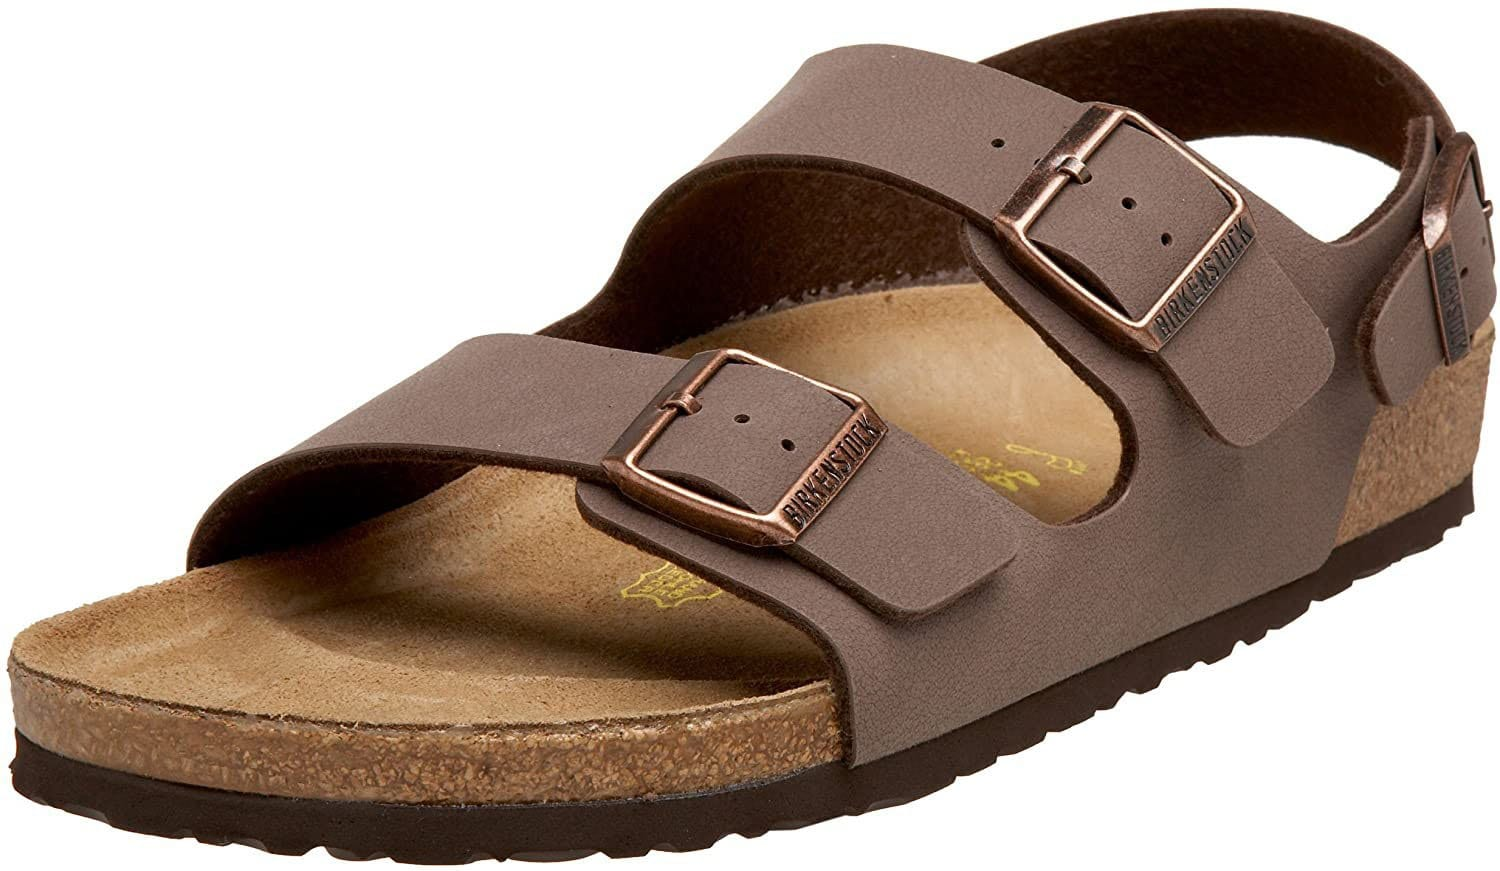 Birkenstock sandals are the perfect fit for all your summer travels